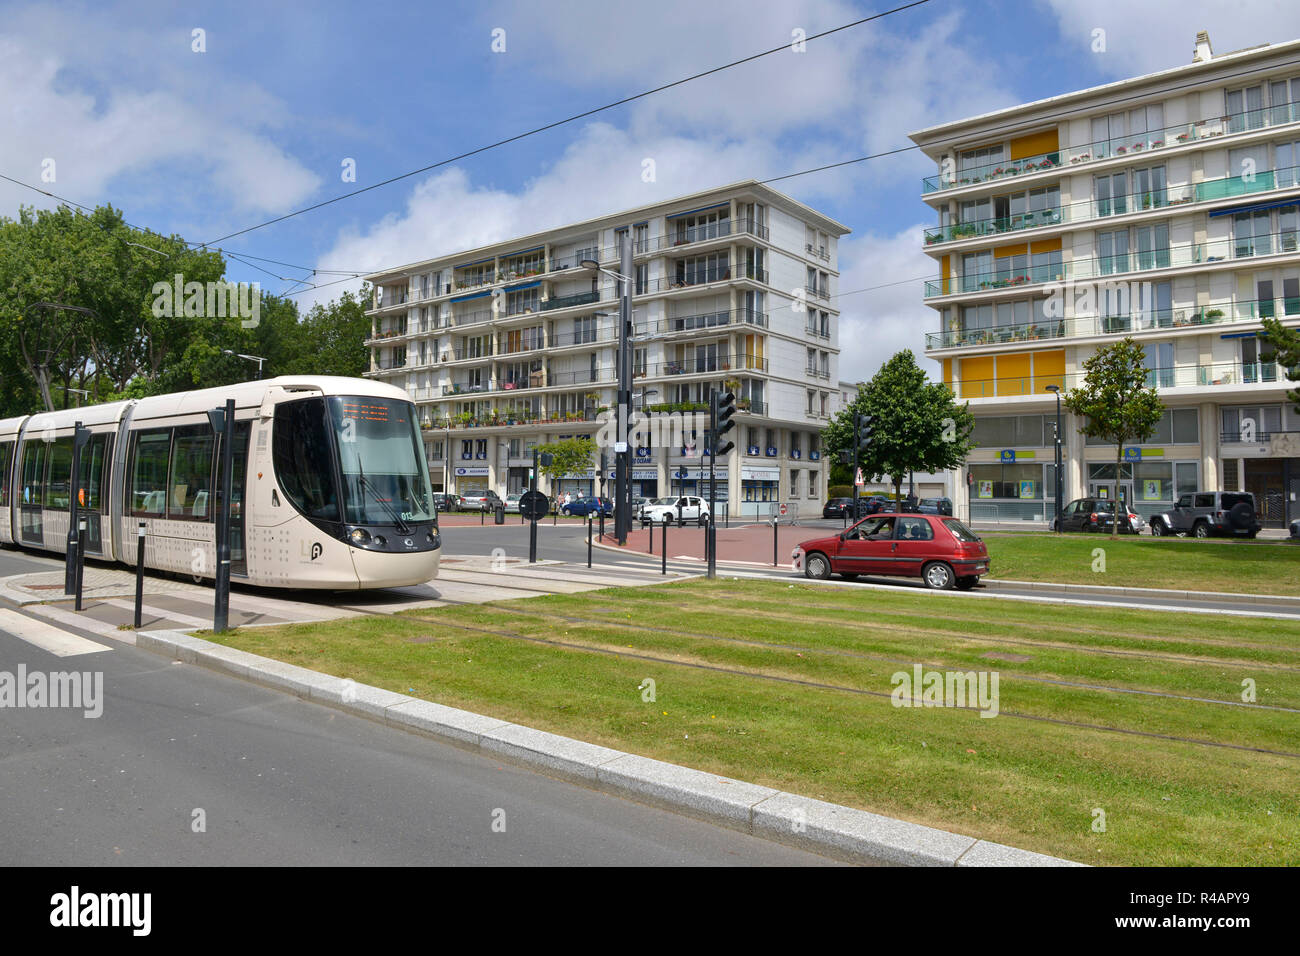 Le Havre (Normandy, north western France): properties in 'avenue Foch' in the city centre and a tram. Buildings designed by architect Auguste Perret:  - Stock Image